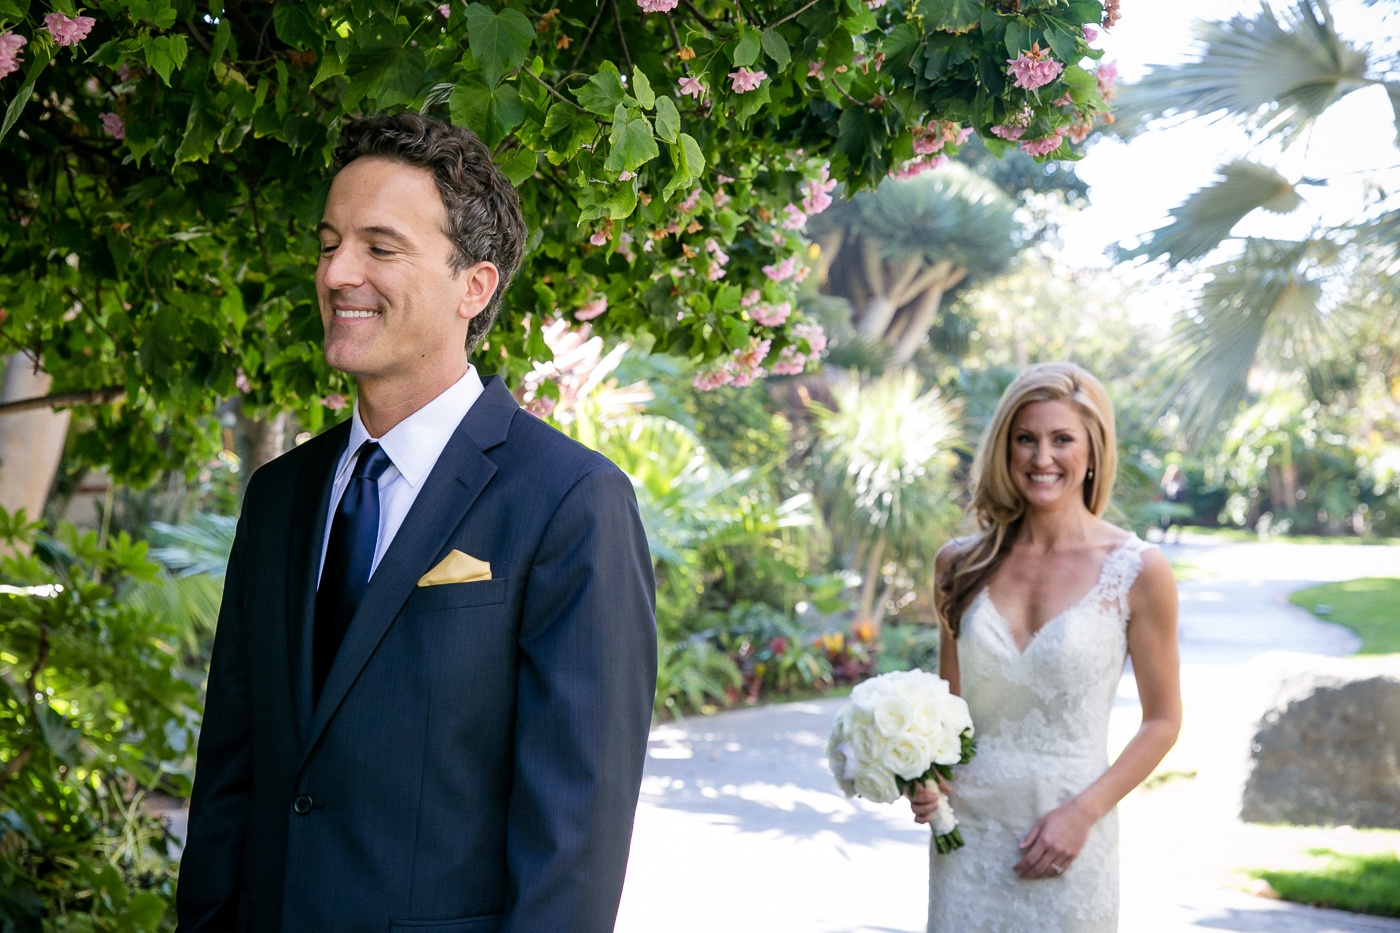 WEDDING_LEAF_PHOTOGRAPHY_DARLINGTON_HOUSE_LA_JOLLA_CATAMARAN_HOTEL_KIM_&_BOB_WED_2013_7X9A5642